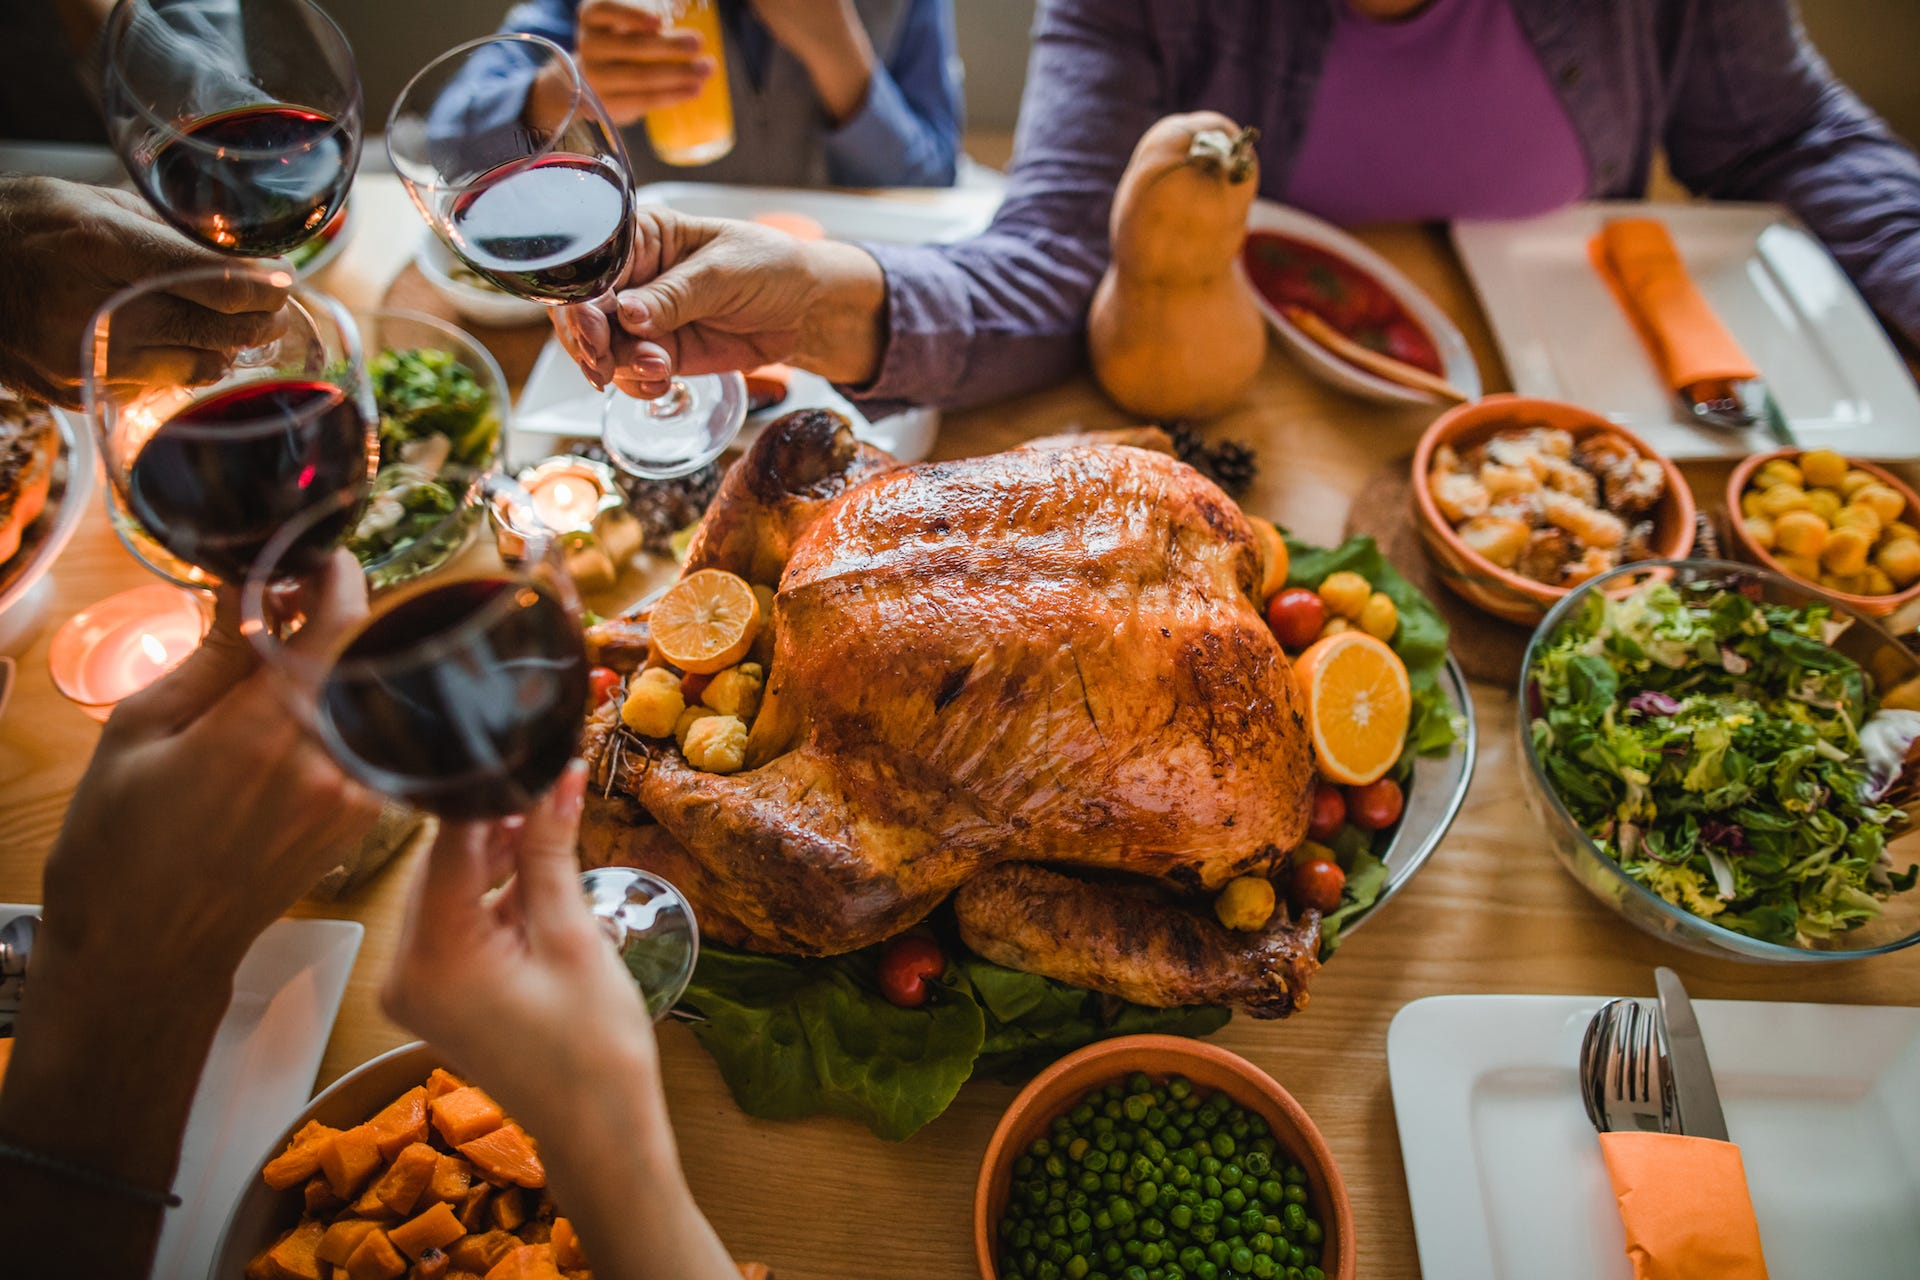 'The virus is attending these events': Experts fear COVID-19 spike from holiday gatherings – even if they're small